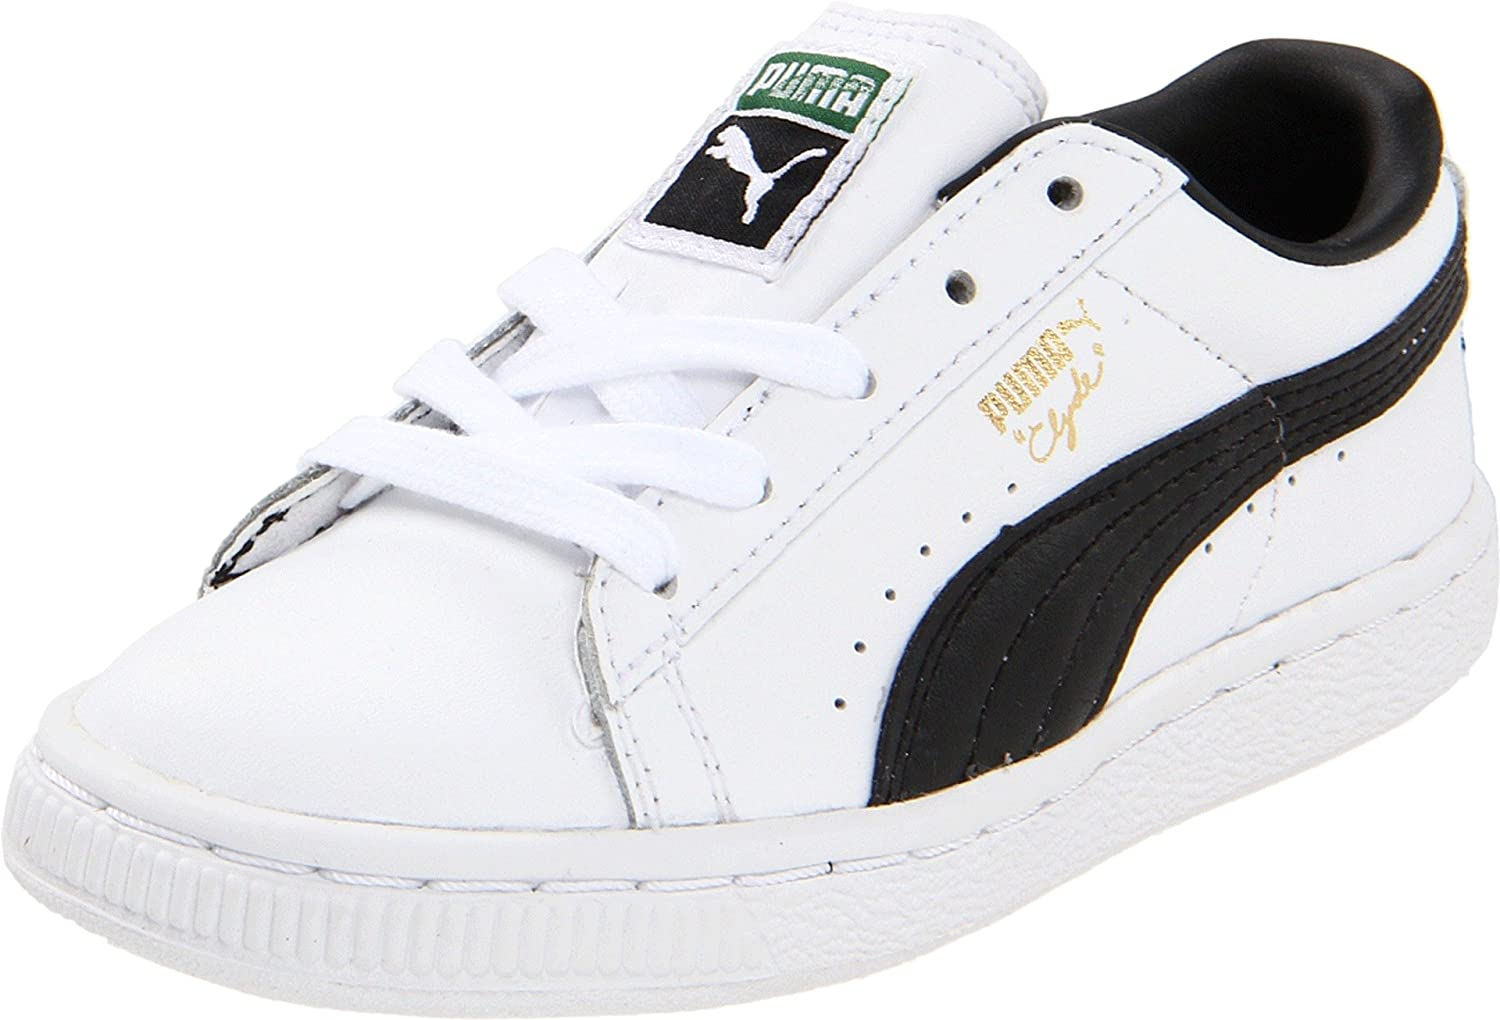 innovative design ec571 92a06 PUMA Clyde Leather Lace-Up Sneaker (Toddler)